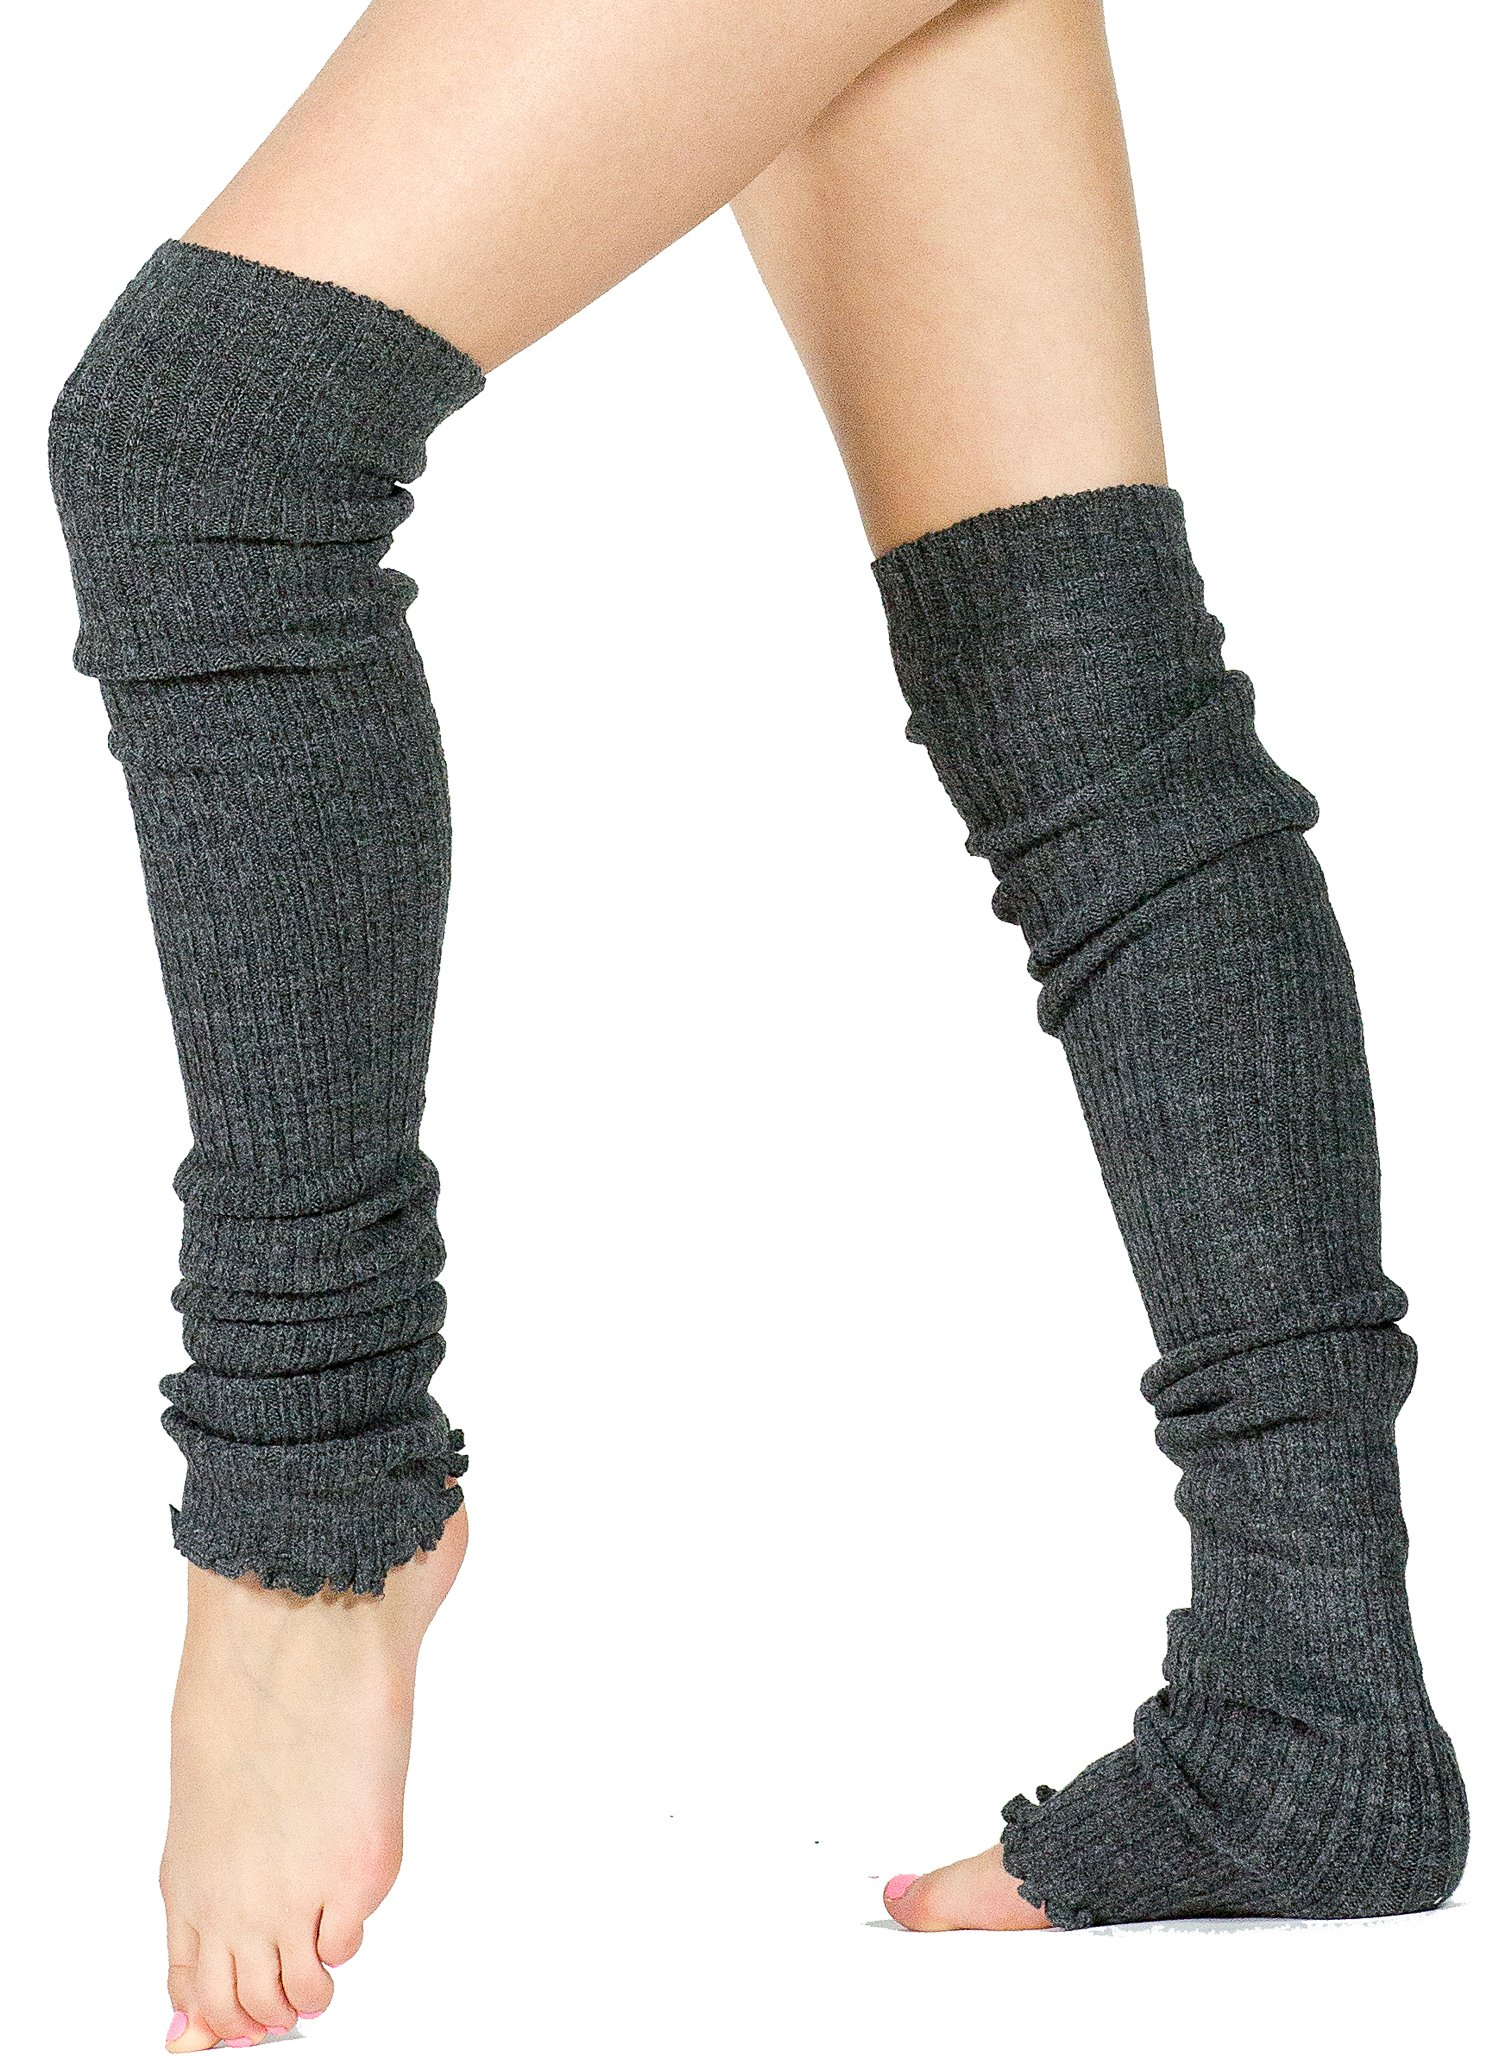 Plum / Purple KD dance New York 28 Inch Sexy Thigh High Women's Leg Warmers Stretch Knit Ruffled Top No Itch Soft Cozy Made In USA Spring Is Here Cozy Ballet Yoga Pilates Fashion Diabetes